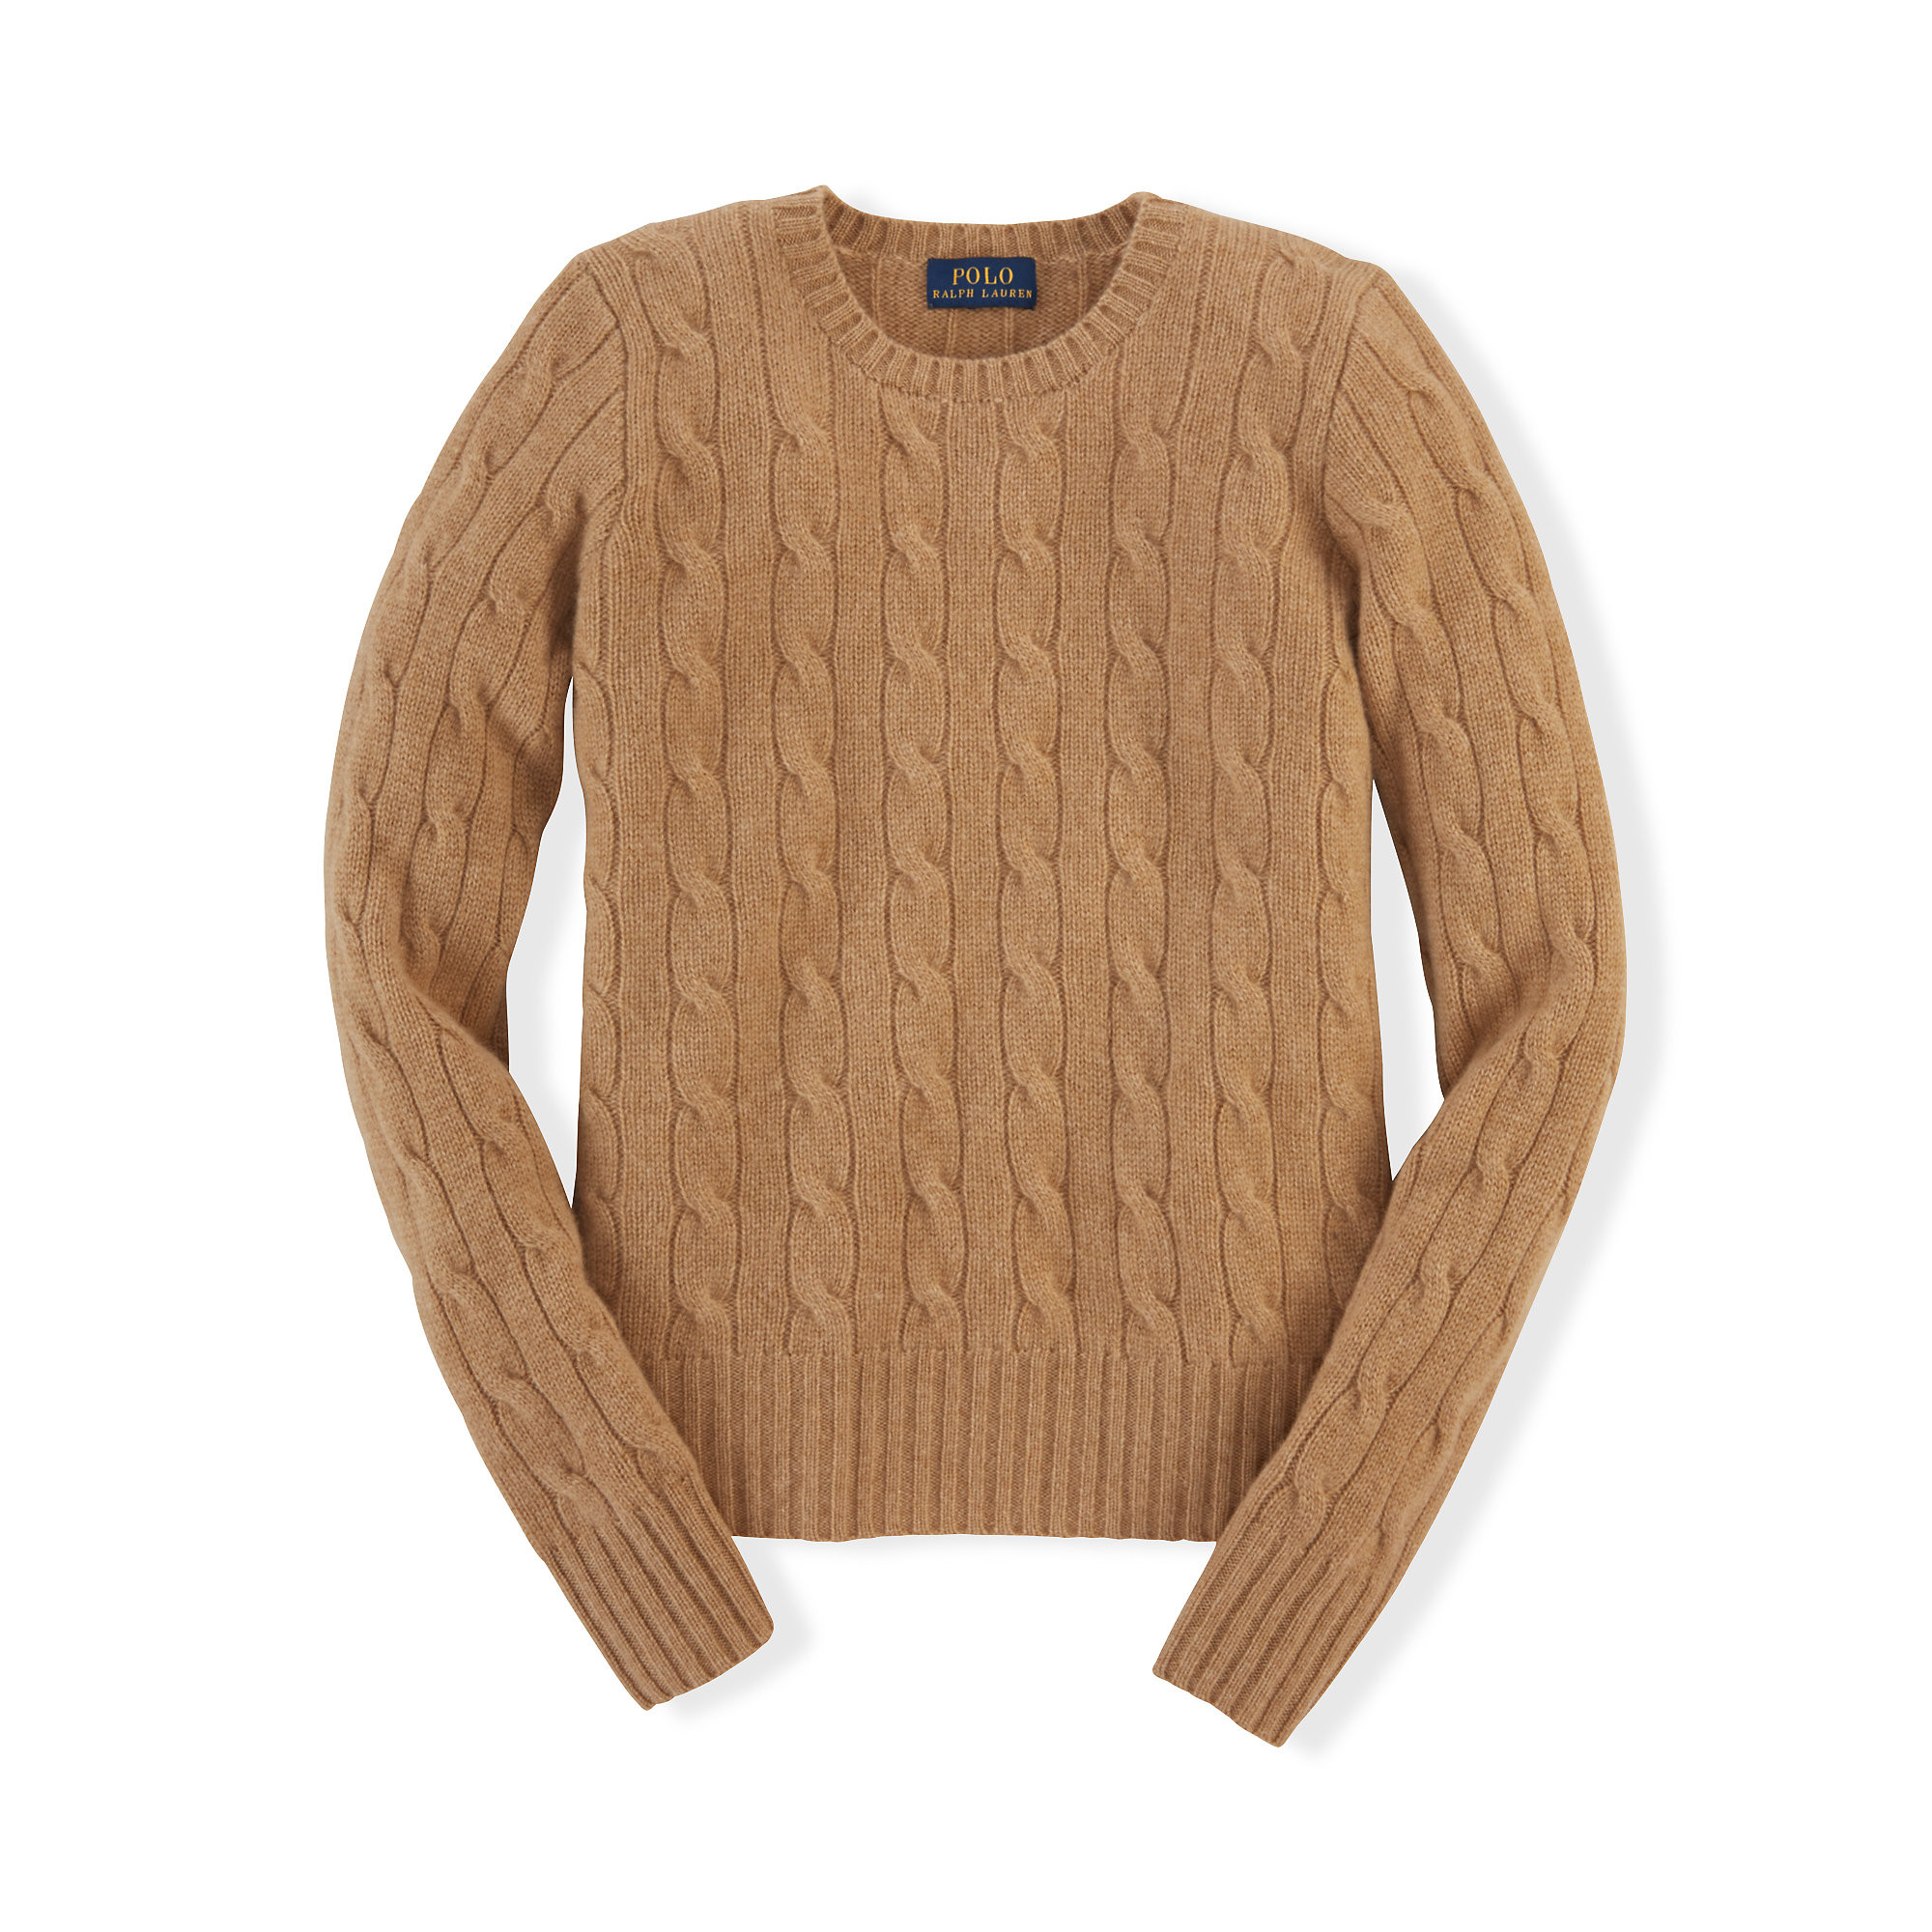 Awesome Brown Cable Sweater Coat Nj Cable Knit Cardigan Sweater Of Wonderful 46 Models Cable Knit Cardigan Sweater